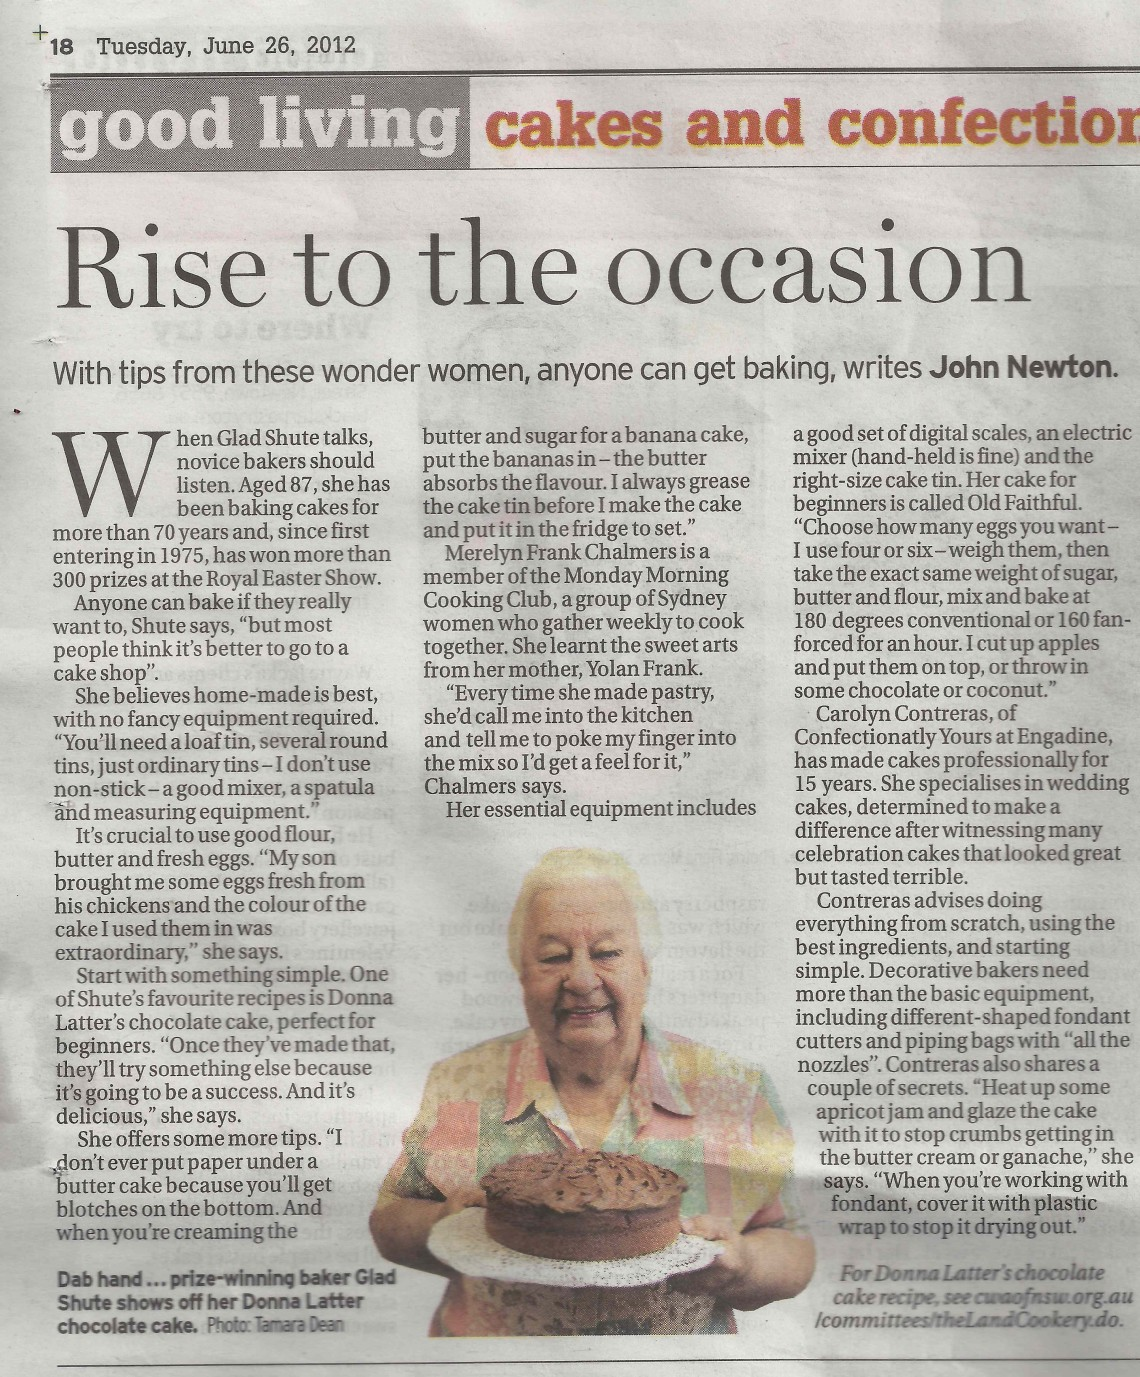 Sydney Morning Herald GL 26 June 'Rise to the Occasion'